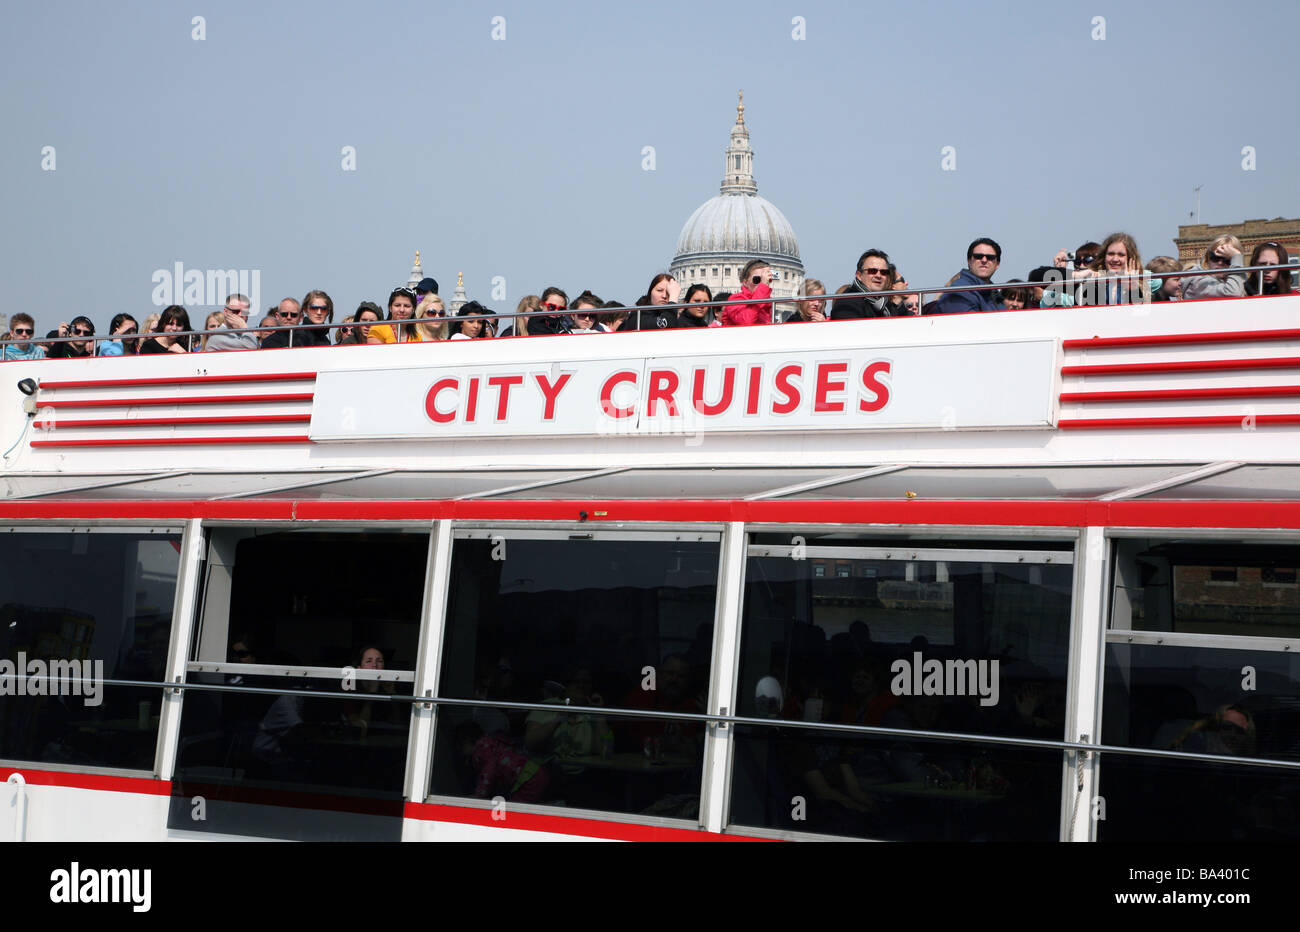 Passengers on River Thames cruise with St Paul's in background - Stock Image